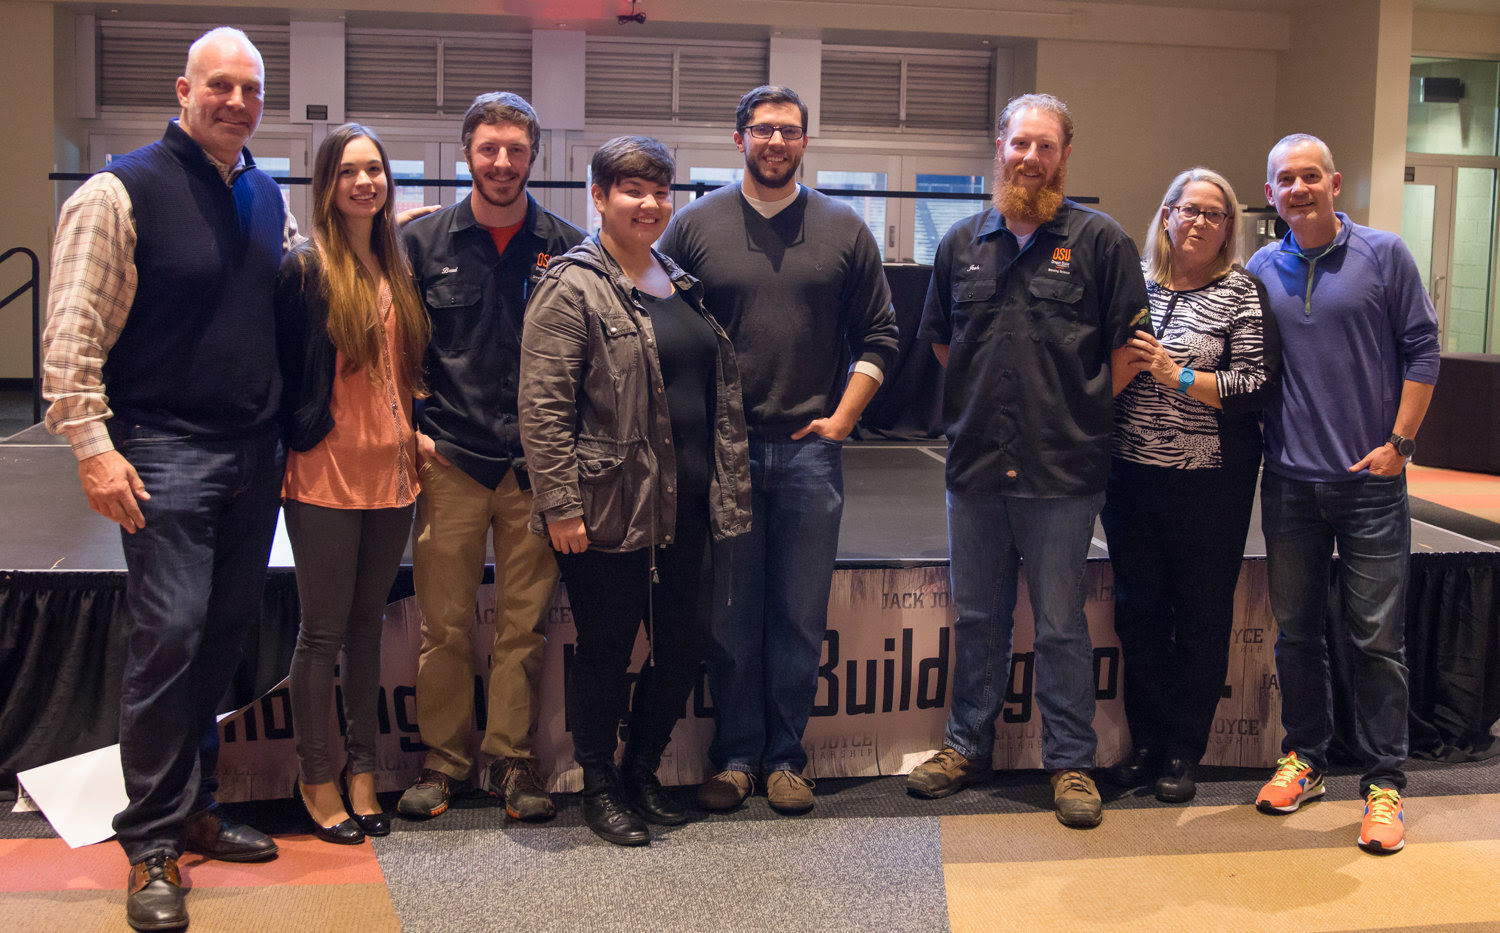 Jack Joyce Scholarship recipients. Pictured from left to right/ Mark Walen, Kaylyn Kirkpatrick, Brad Barnett, Lorena Ramos, Justin Alexander, Josh McCallum, Joan Joyce, Brett Joyce. (image courtesy of Rogue Ales)